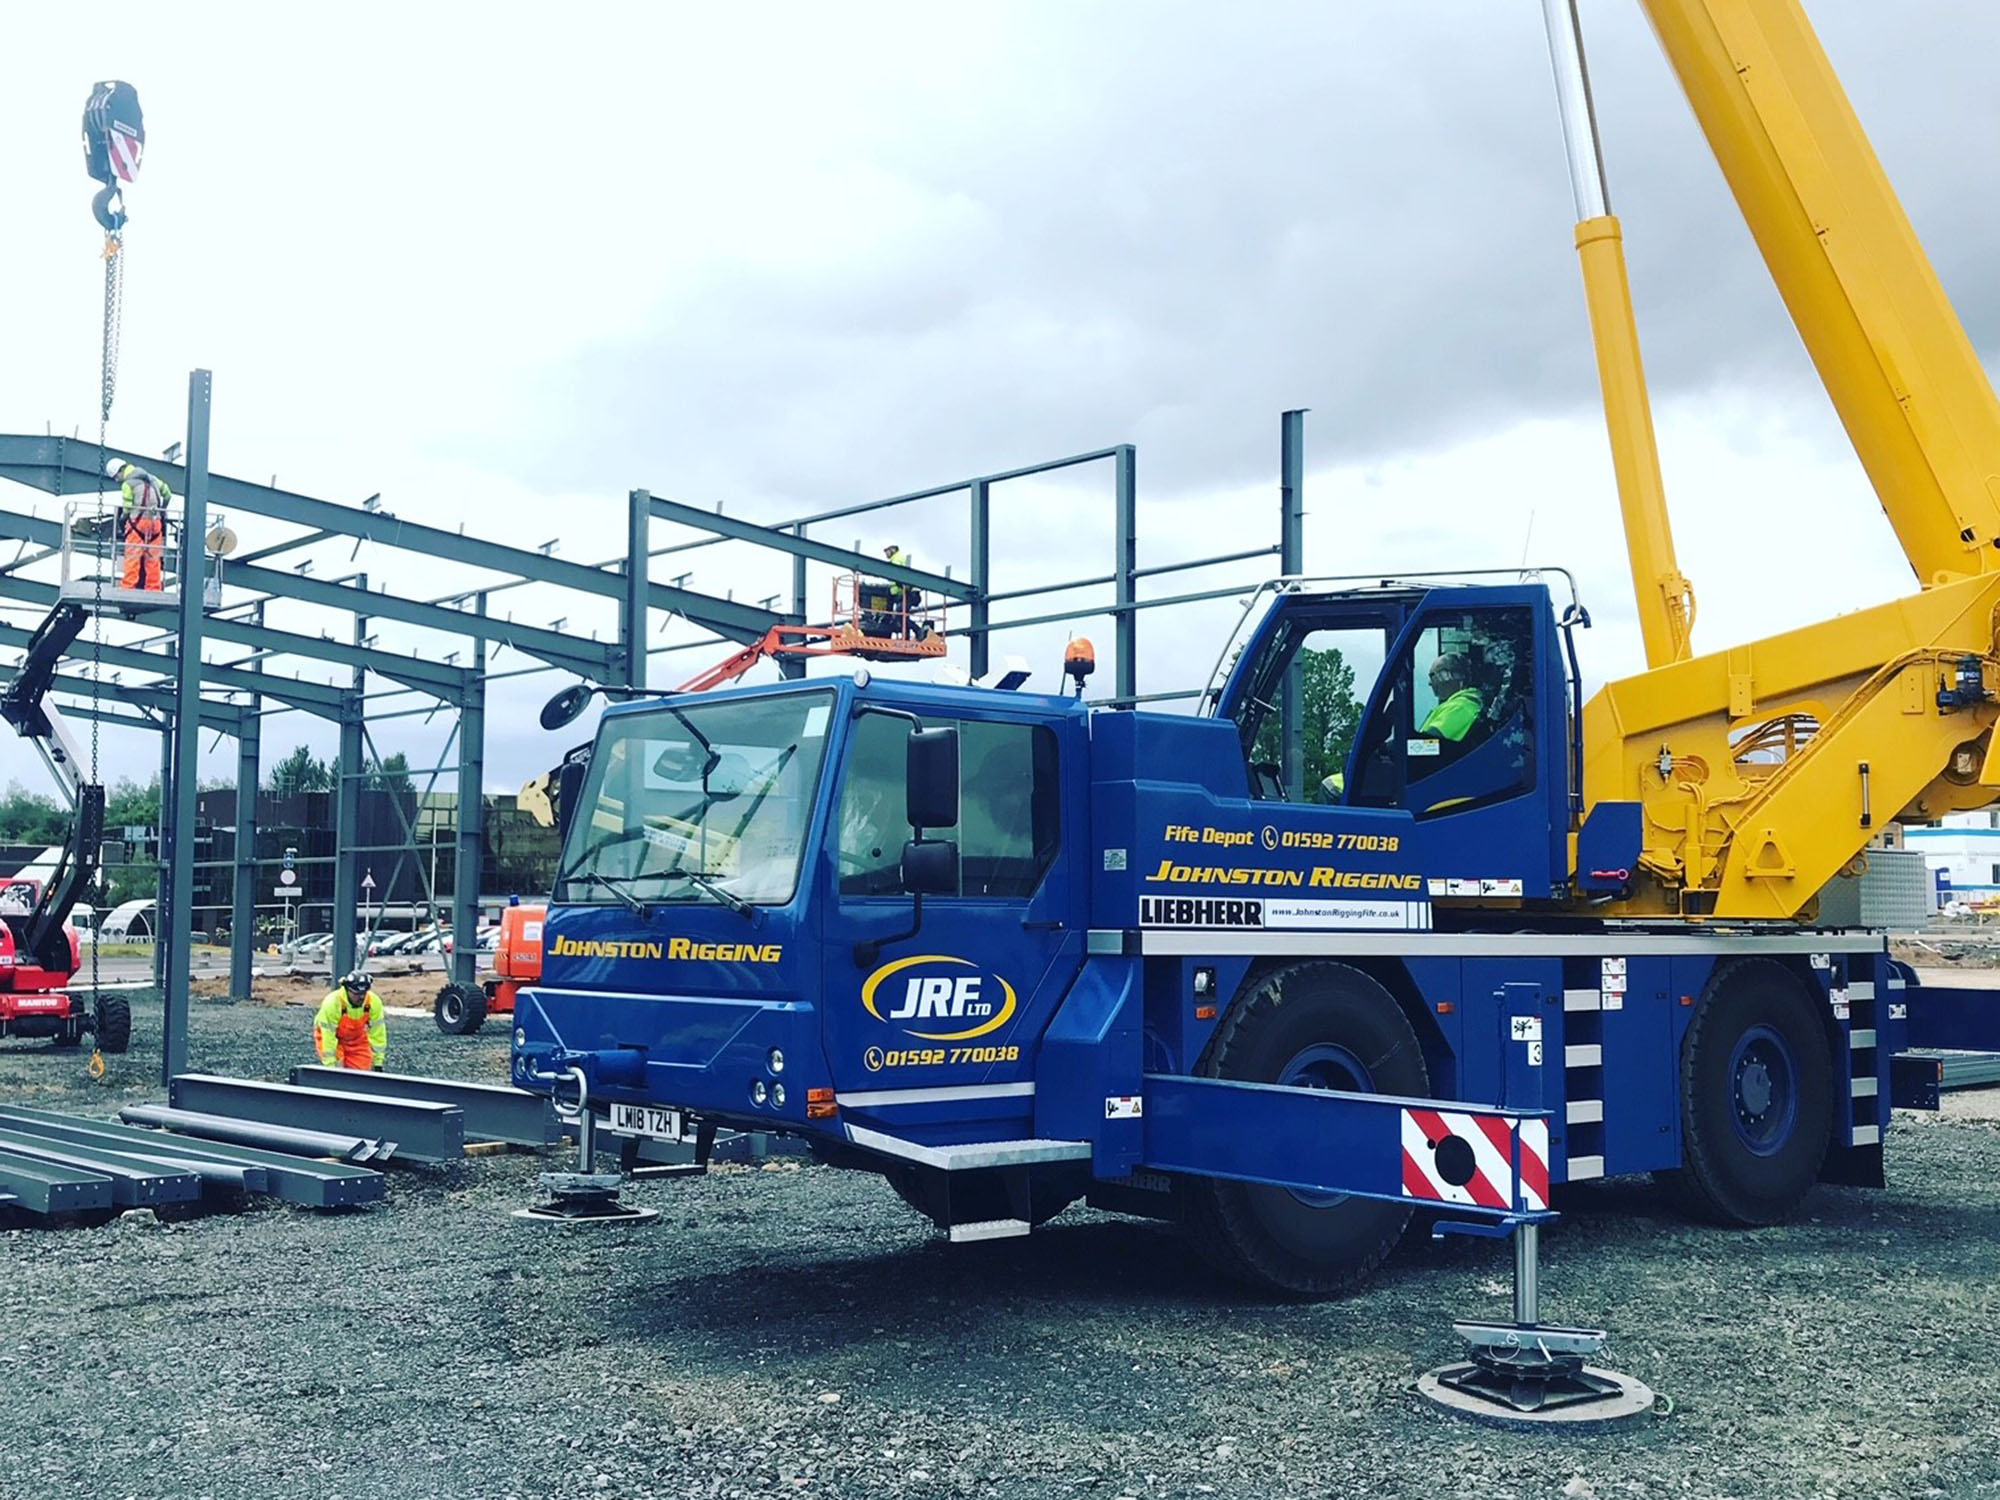 Mobile crane hire in glenrothes